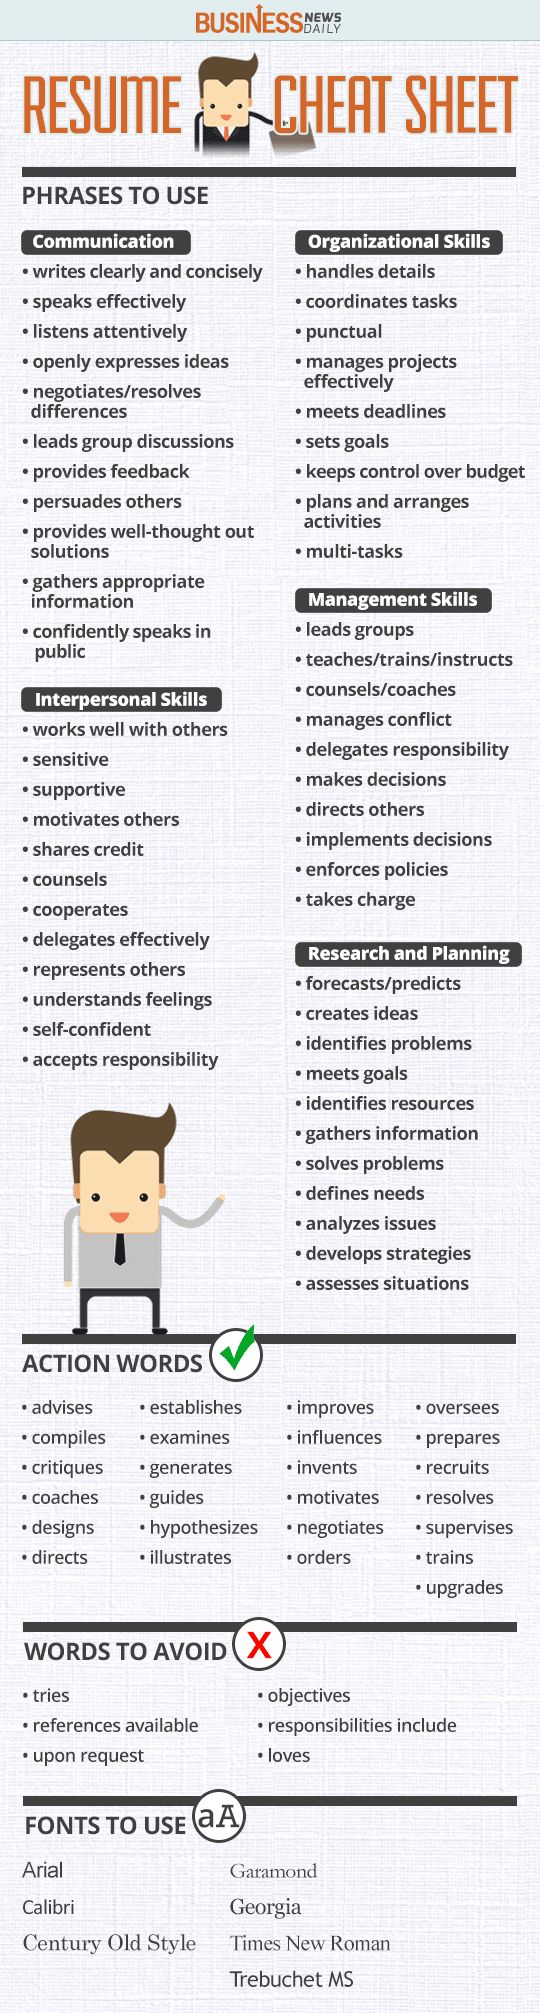 25 unique resume tips ideas on pinterest resume job search and